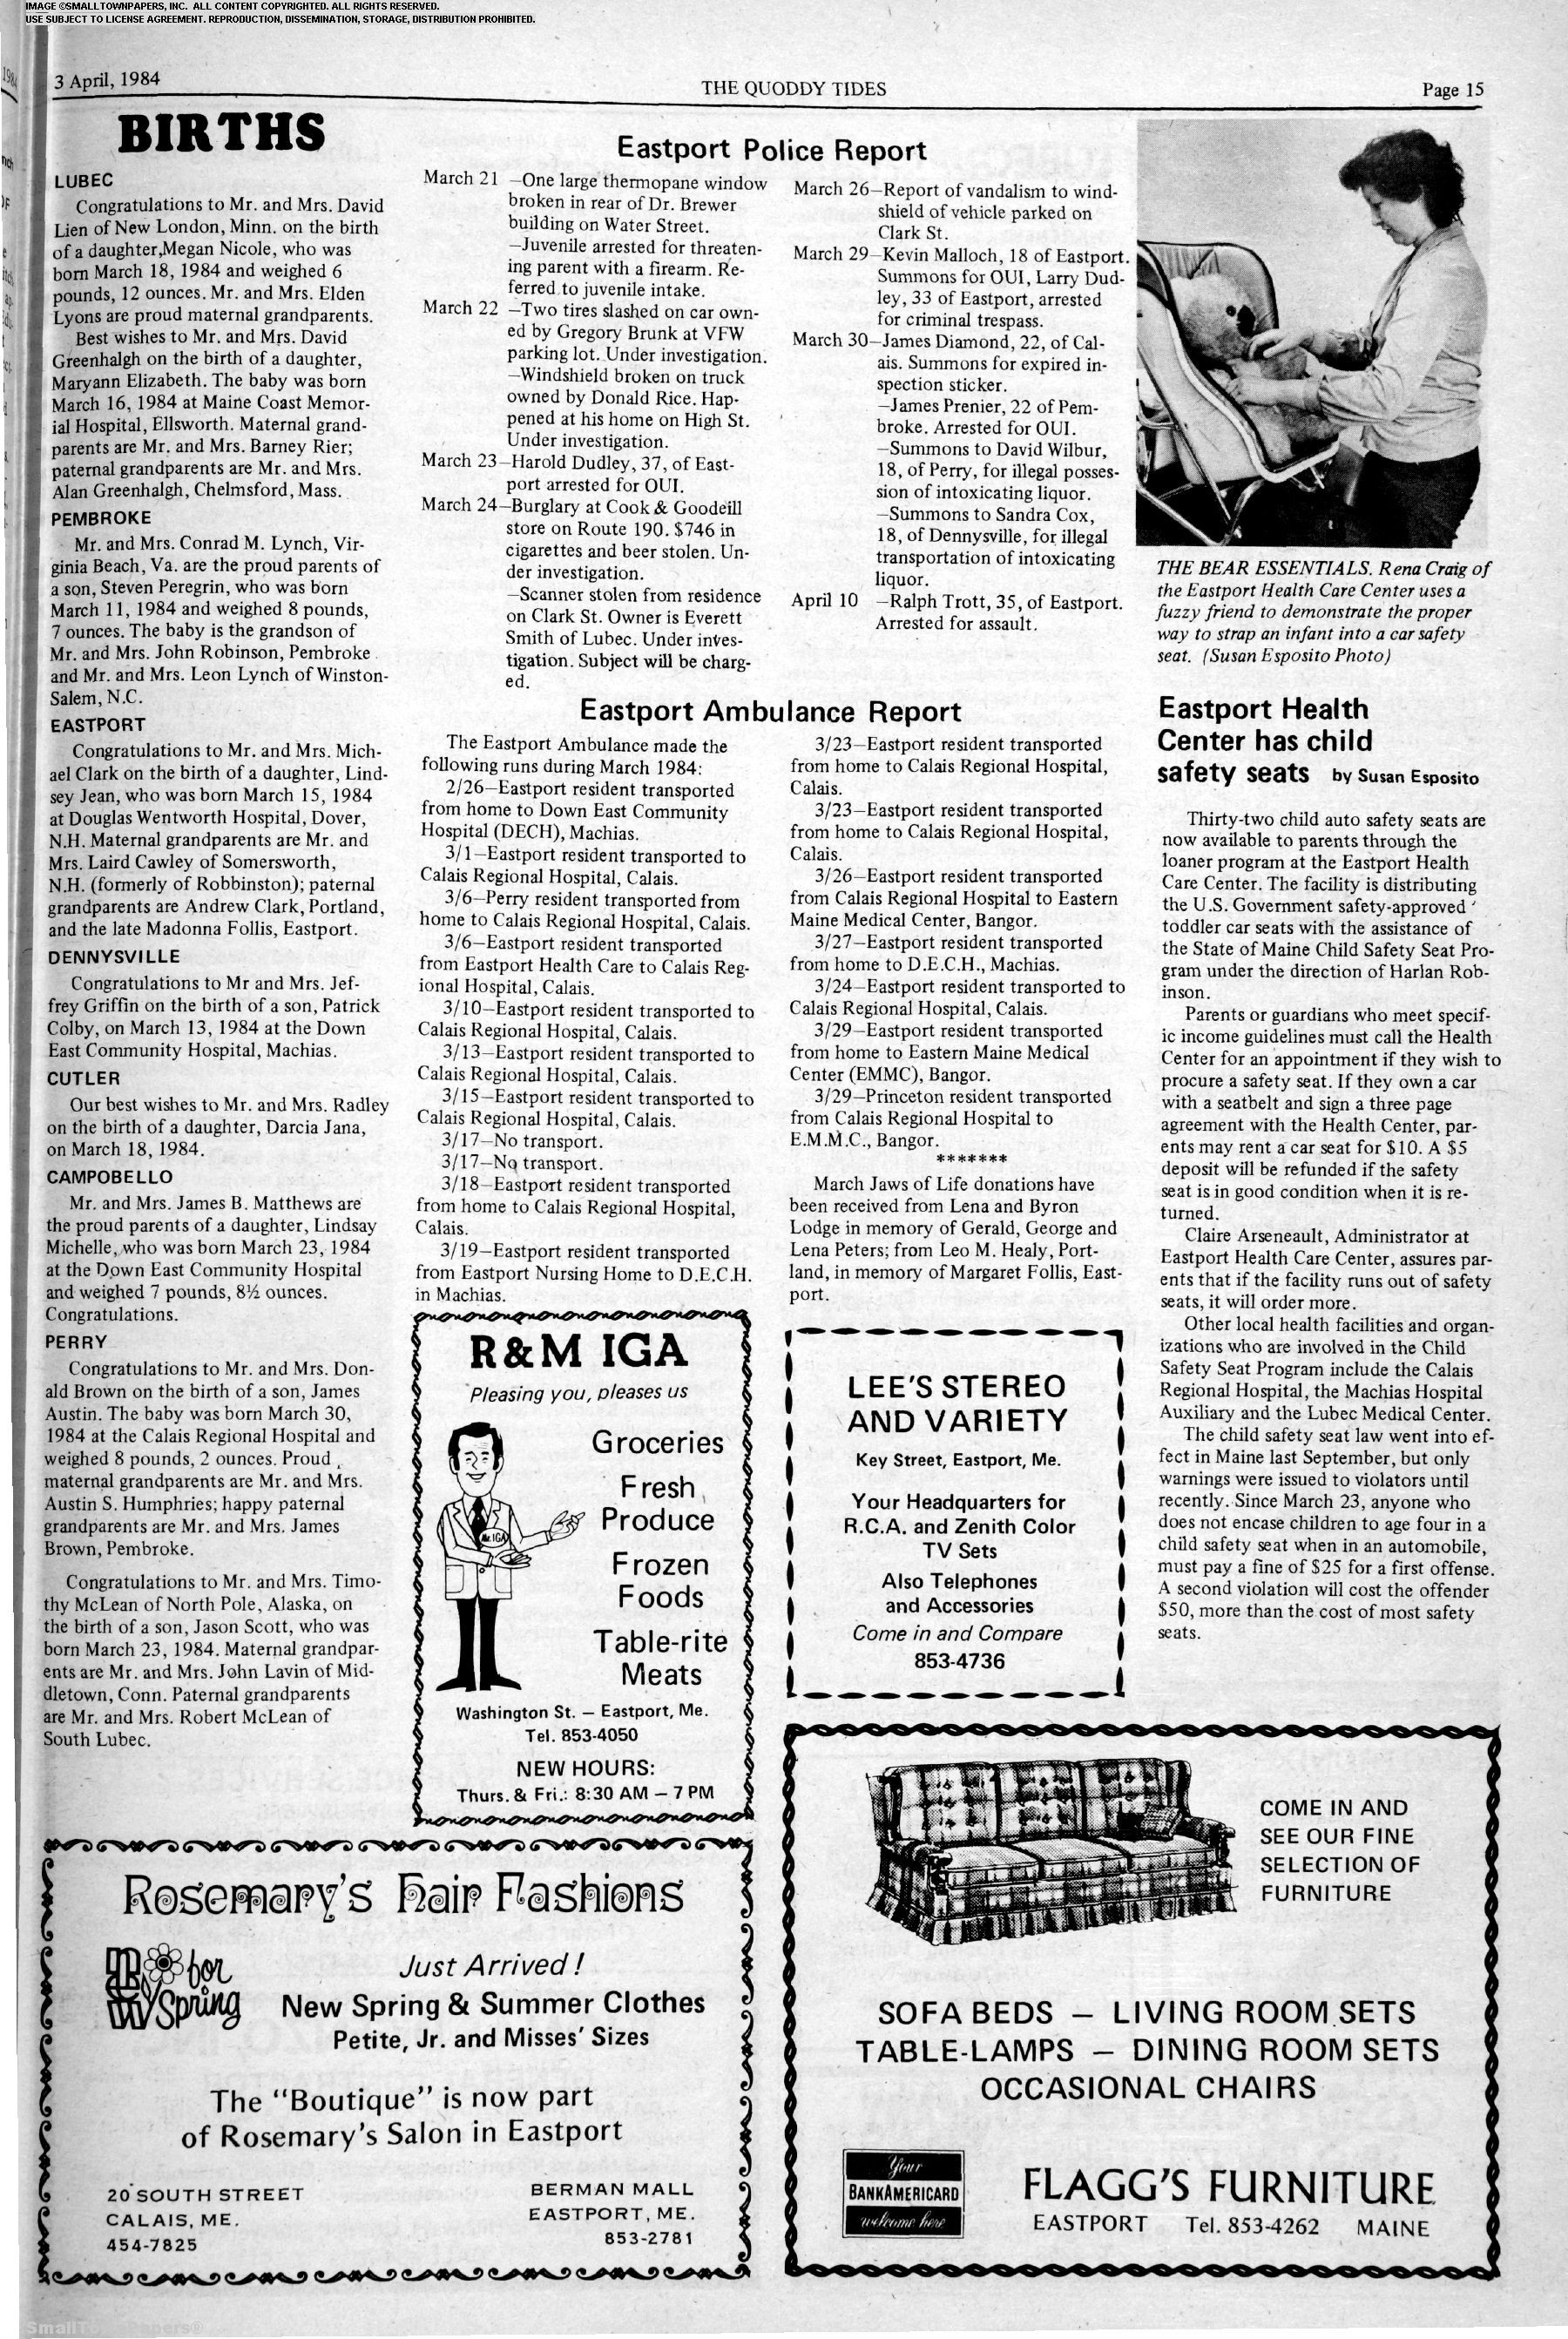 Quoddy Tides April 13, 1984: Page 15